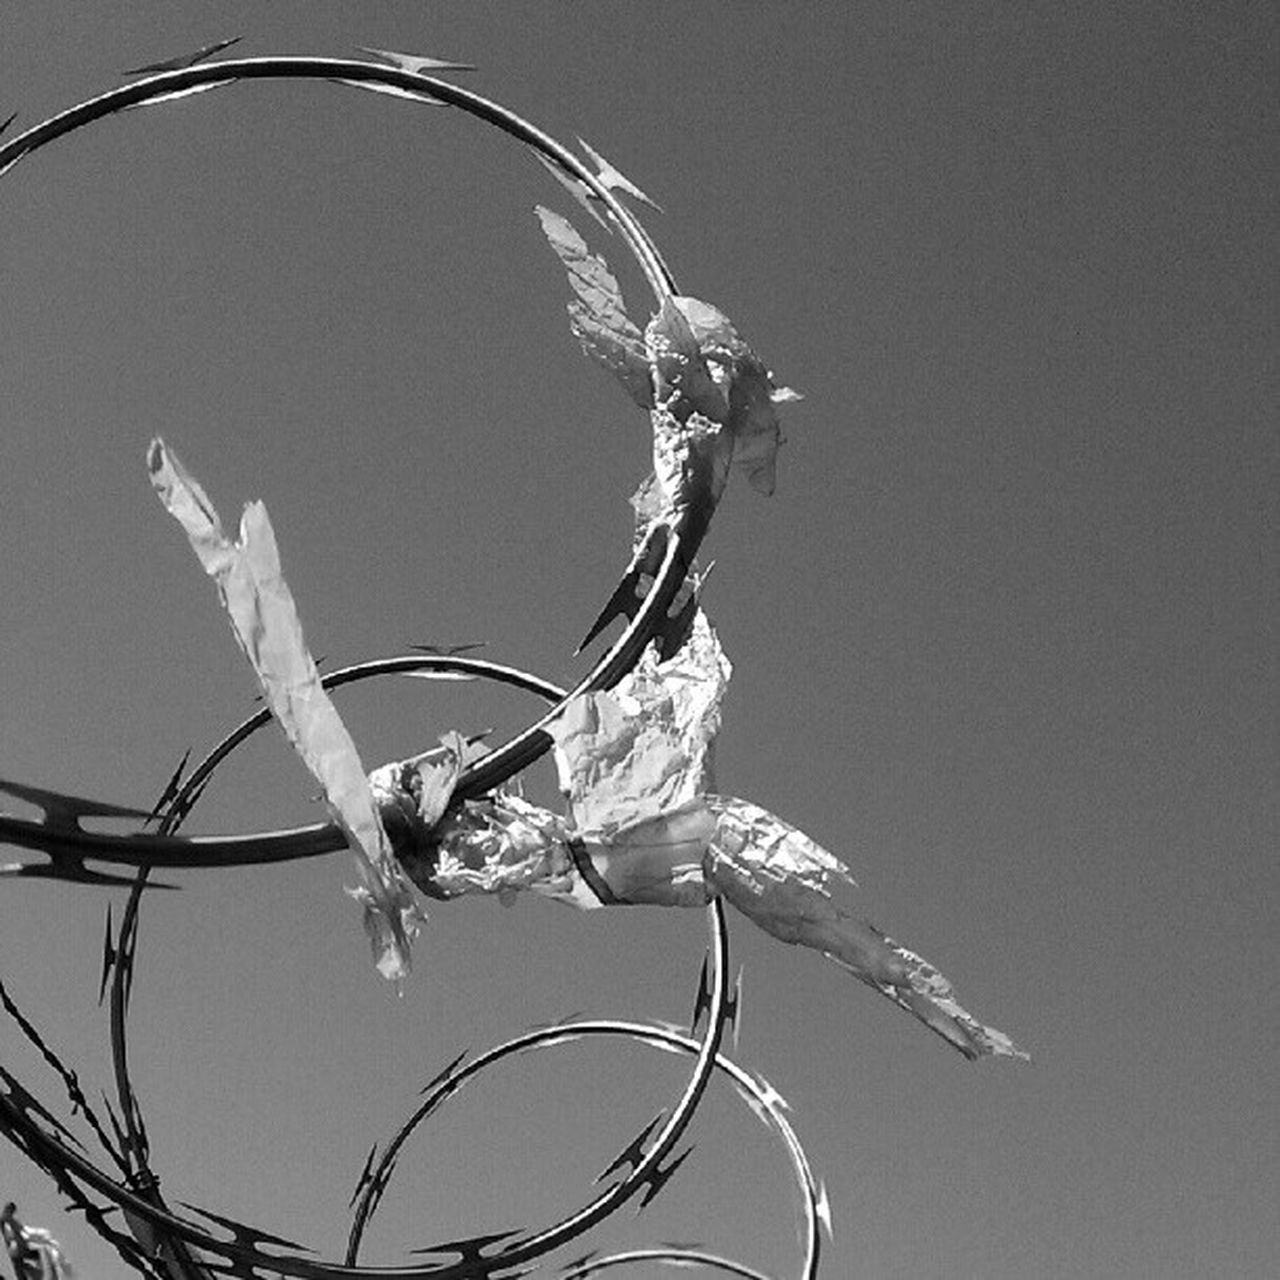 Waiving the white flag Sky LiveanddirectfromLosAngeles Black&white Monochrome Fortheloveofblackandwhite Bnw Blackandwhite Razorsharpsky Barbed Wire Razorwire Lookingup